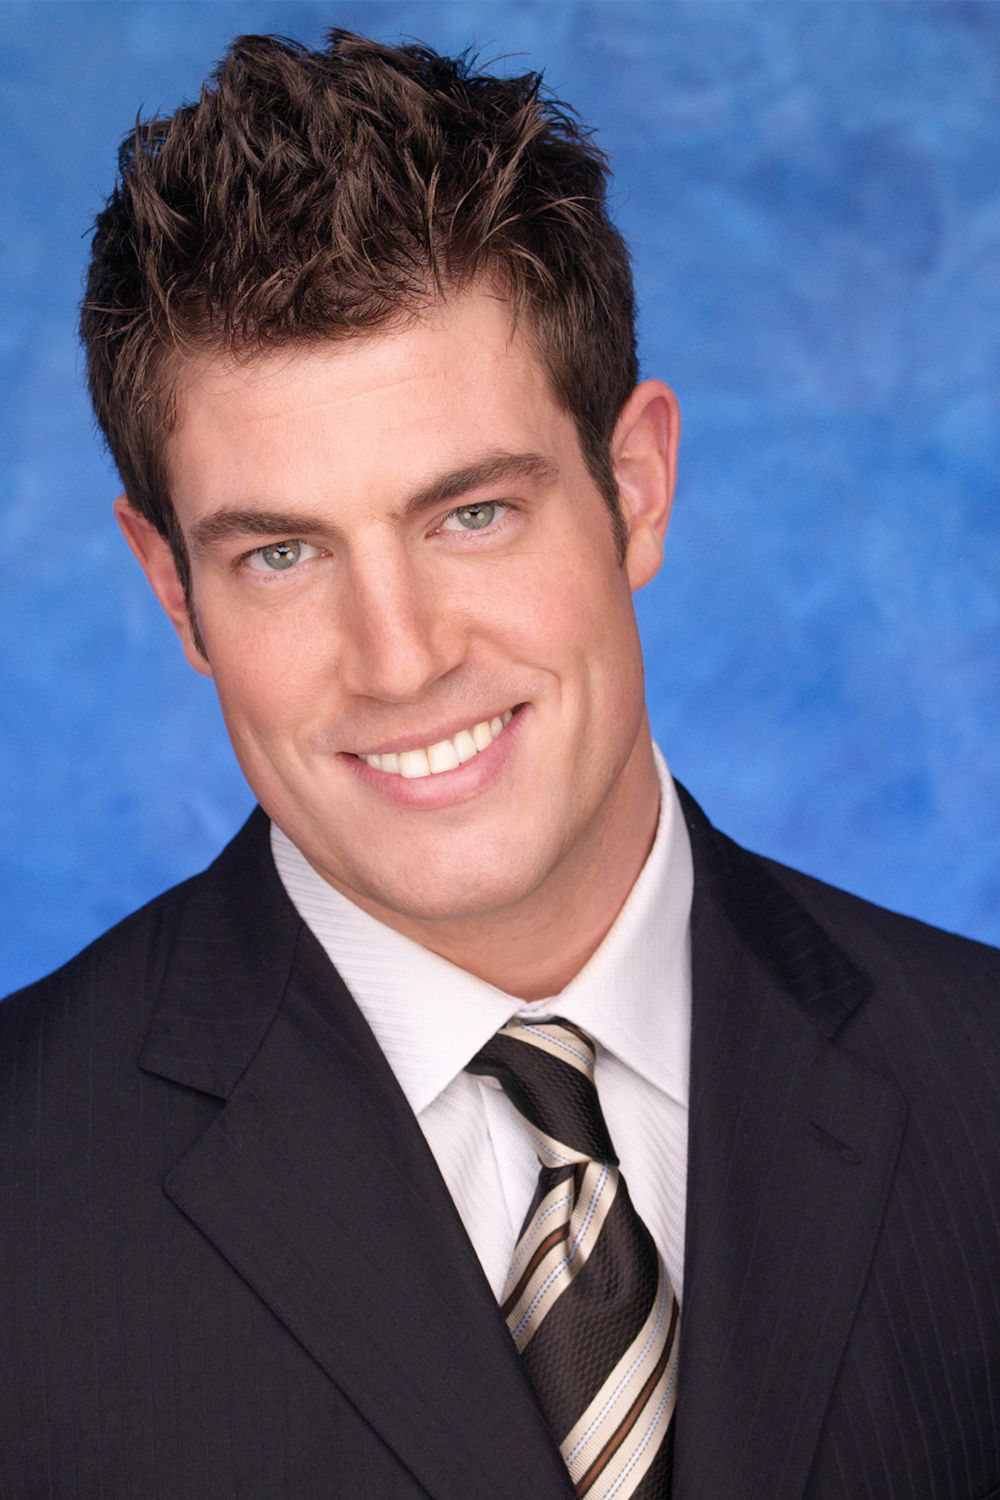 Jesse Palmer ('The Bachelor' Season 5) Every time I watch T he Bachelor , I'm amazed at how they learn the contestants' names so damn fast (shout out to the producers, who I'm sure quiz the bachelors and bachelorettes like crazy). That's why I kinda feel for Jesse Palmer—the New York Giants quarterback who searched for love on season five.